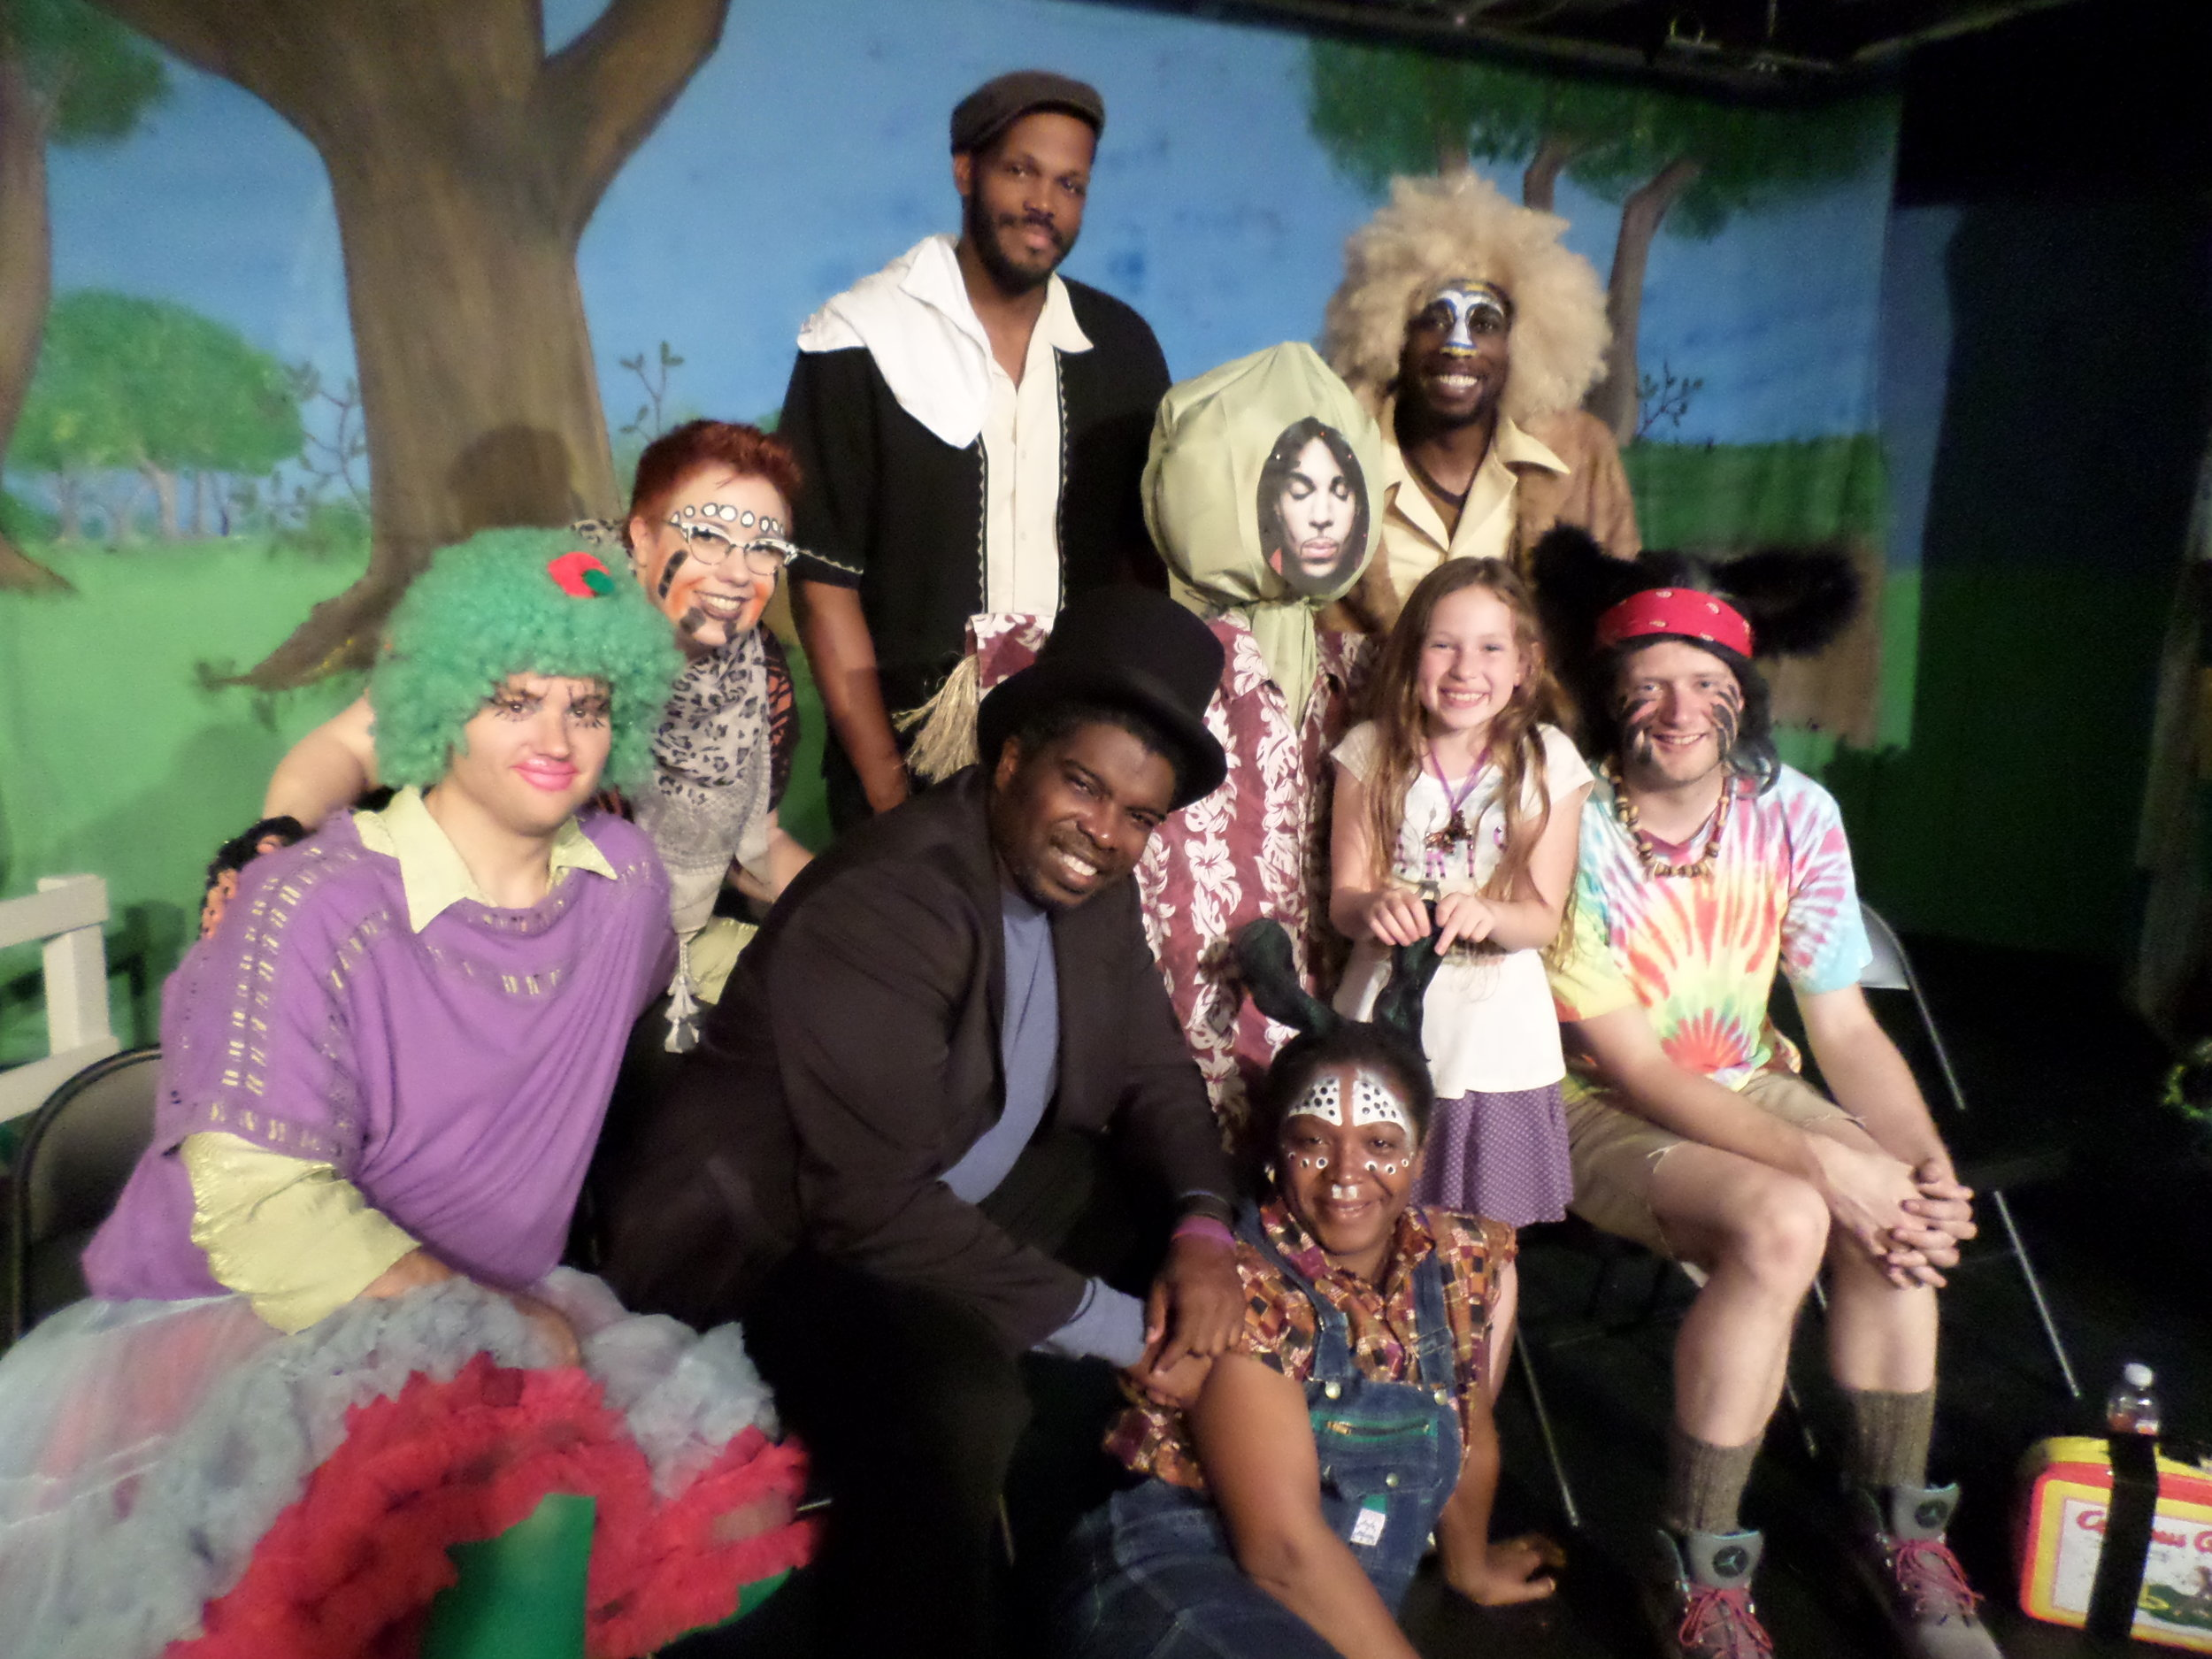 (l-r): Heather McCue (Br'er Tiger), Jimmy Wall (Tar Baby), Darion McCloud (director, Anansi), Thespian Formerly Known as Scarecrow, Charlie Goodrich (Br'er Bear), Michael Clark (Br'er Lion)